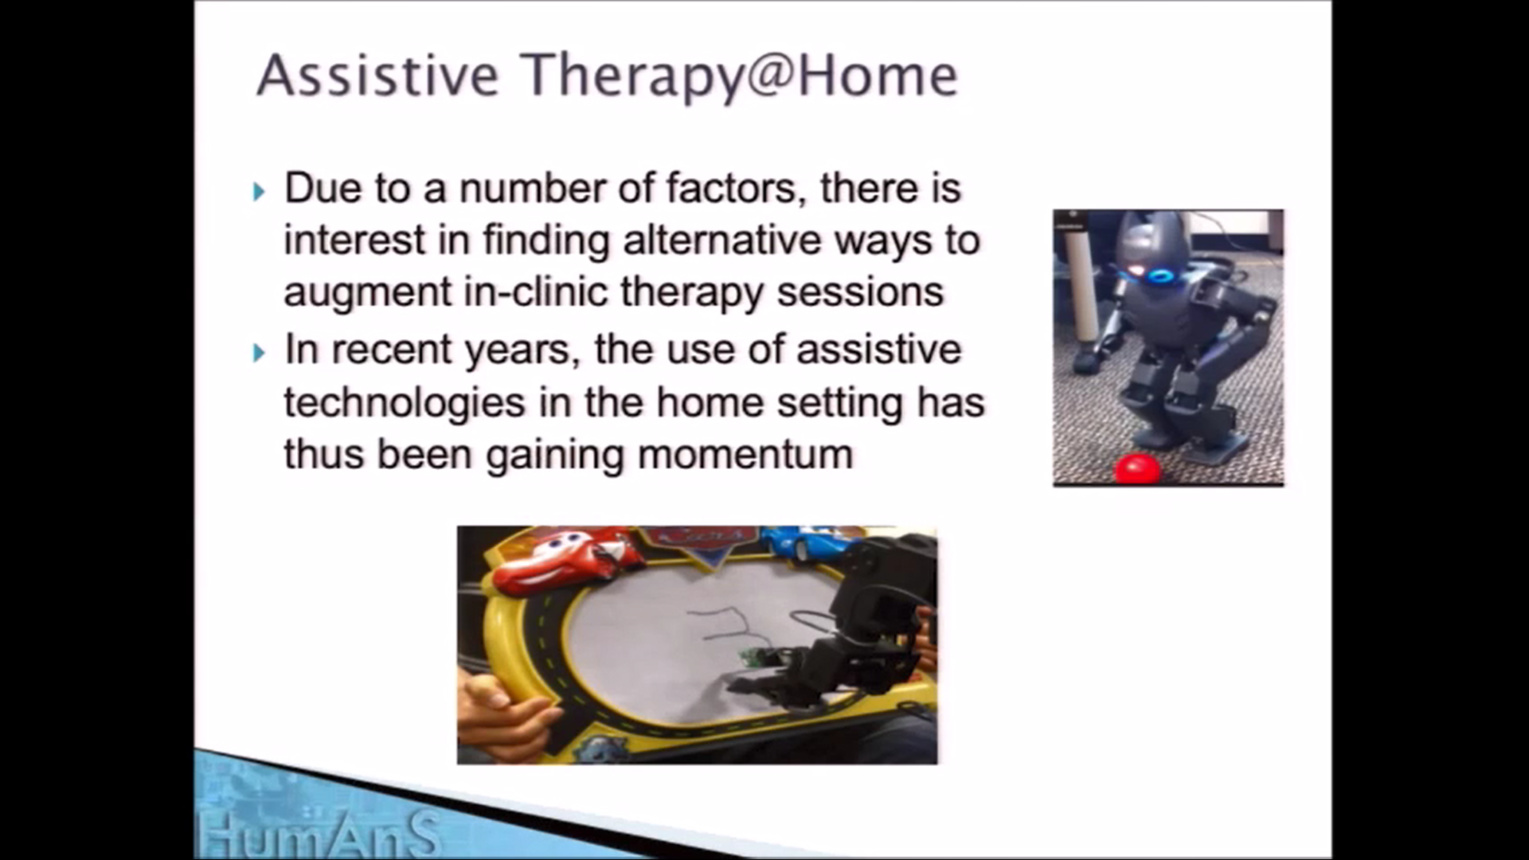 Robots and Gaming - Therapy for Children with Disabilities